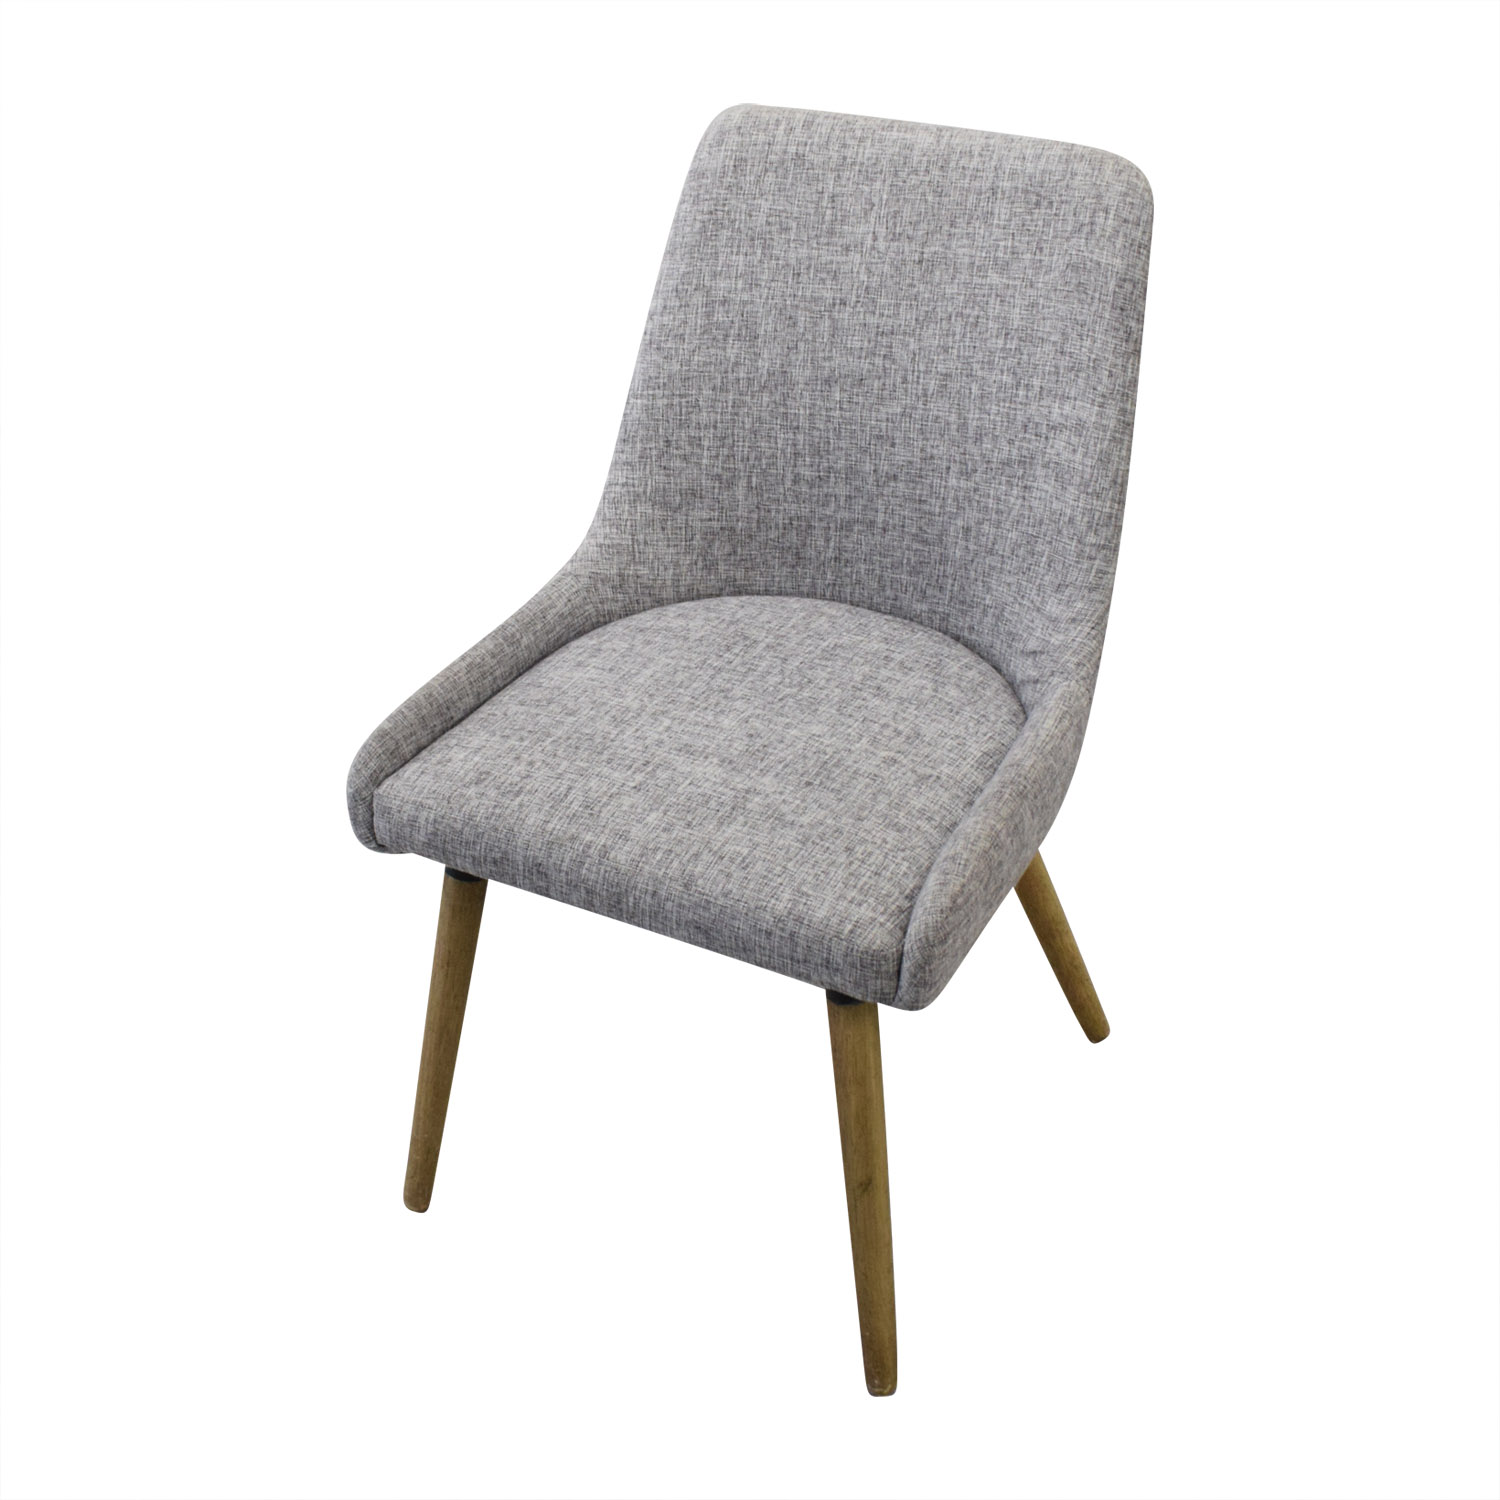 shop West Elm Mid-Century Upholstered Dining Chairs West Elm Dining Chairs